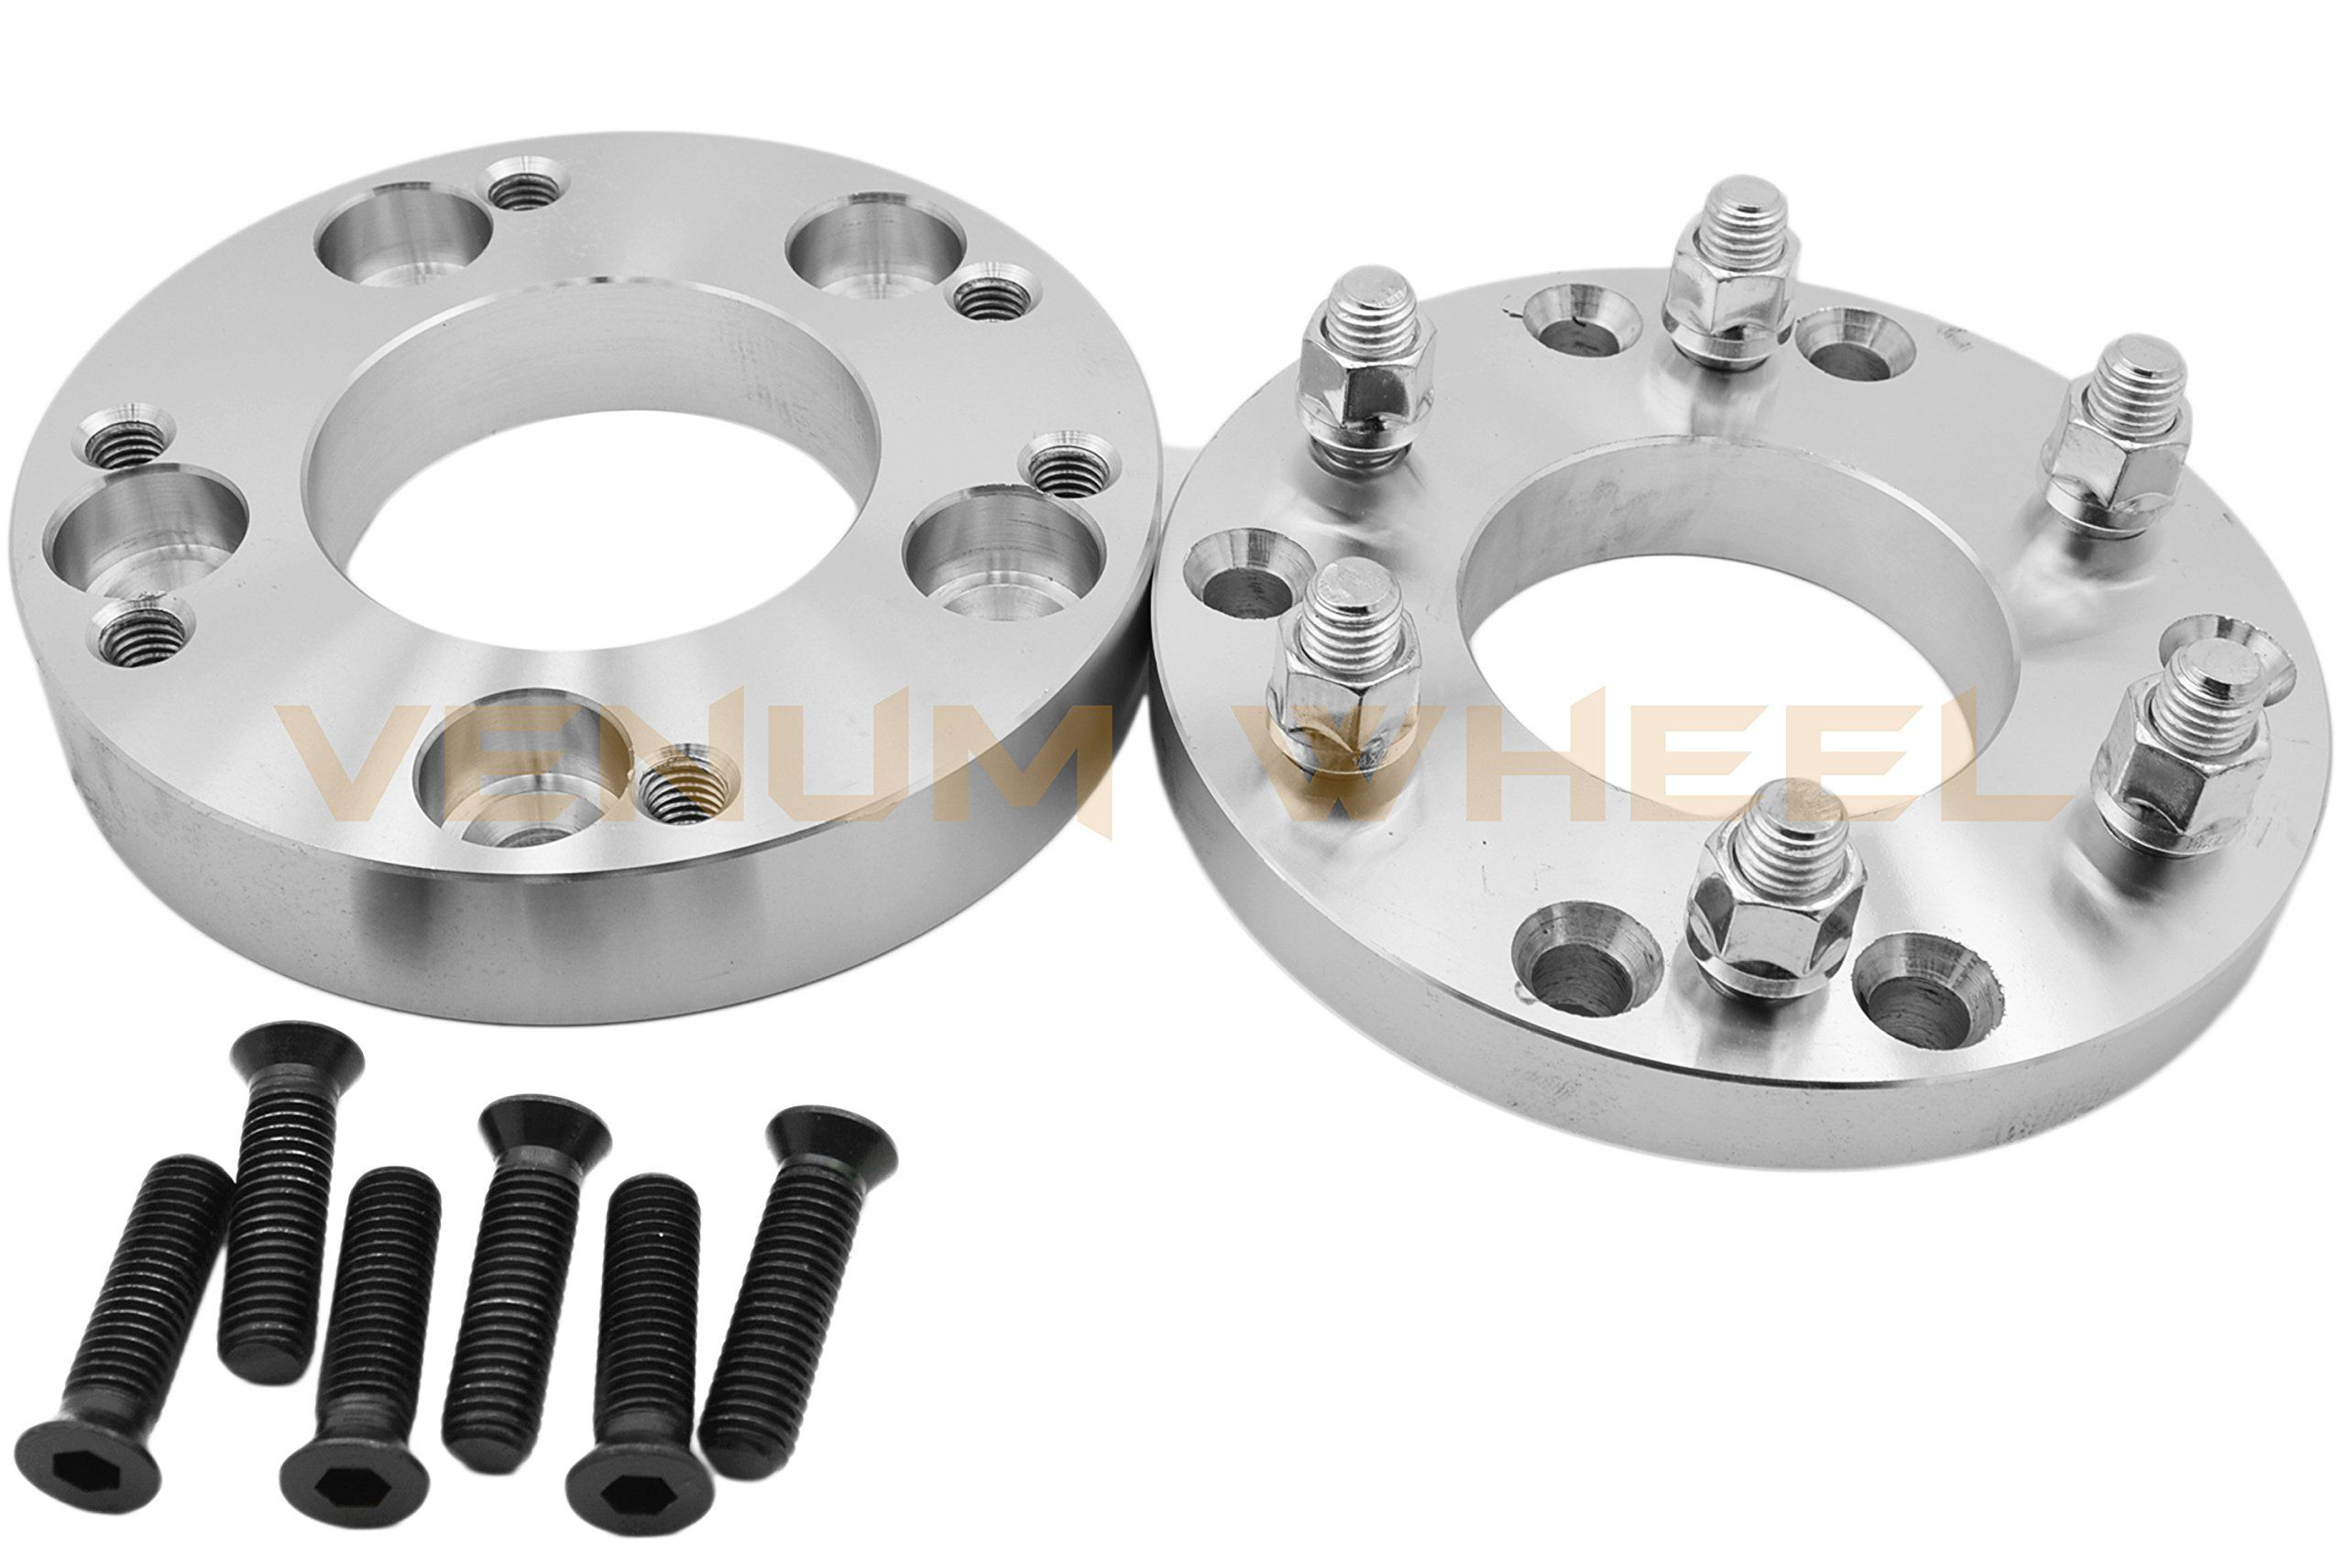 4 Pc 5x5 5 To 6x5 5 5 Lug To 6 Lug Wheel Spacers Adapters Conversion Bolt On 2 Thick 6 Lug Wheels On 5 Lug Trucks 6x5 5 Wheels On 5x5 5 5th Wheels Spacer Wheel